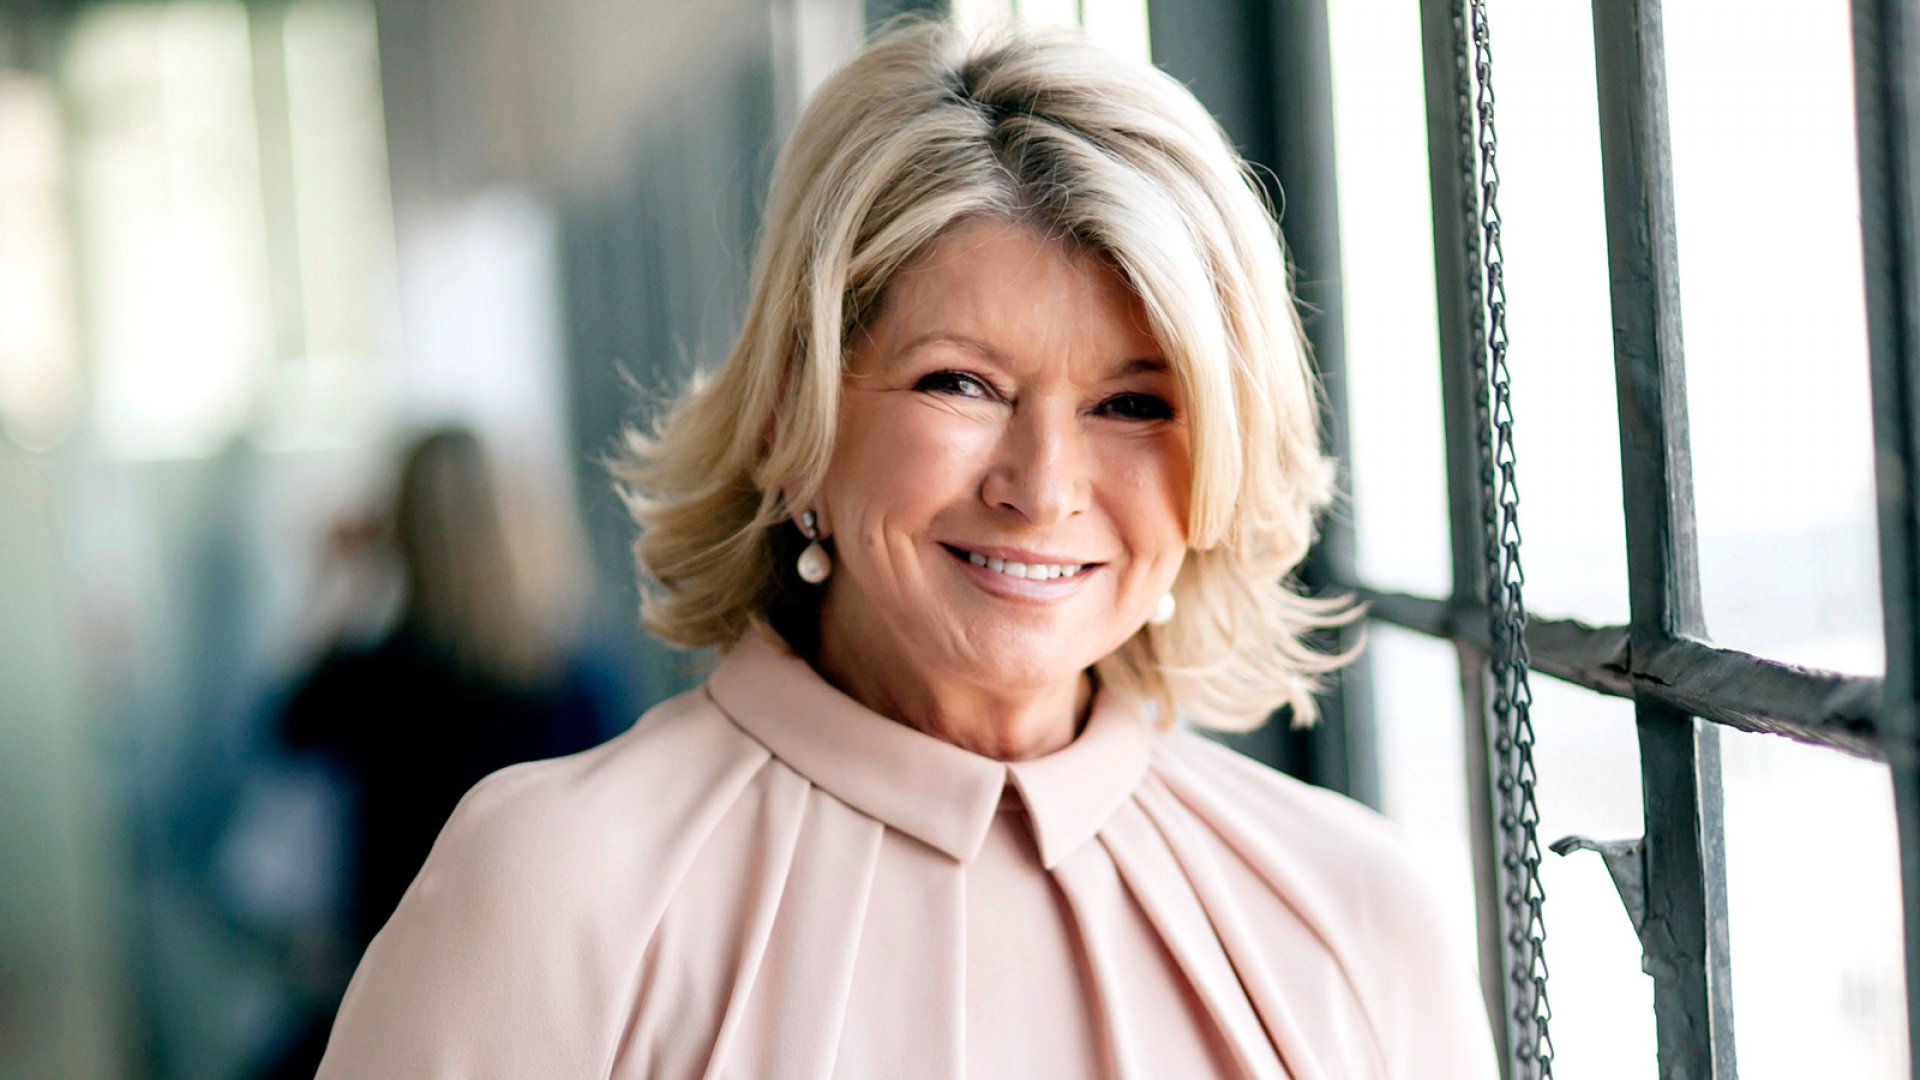 Martha Stewart Unloads on Millennials: Here's What She Said (and Why)